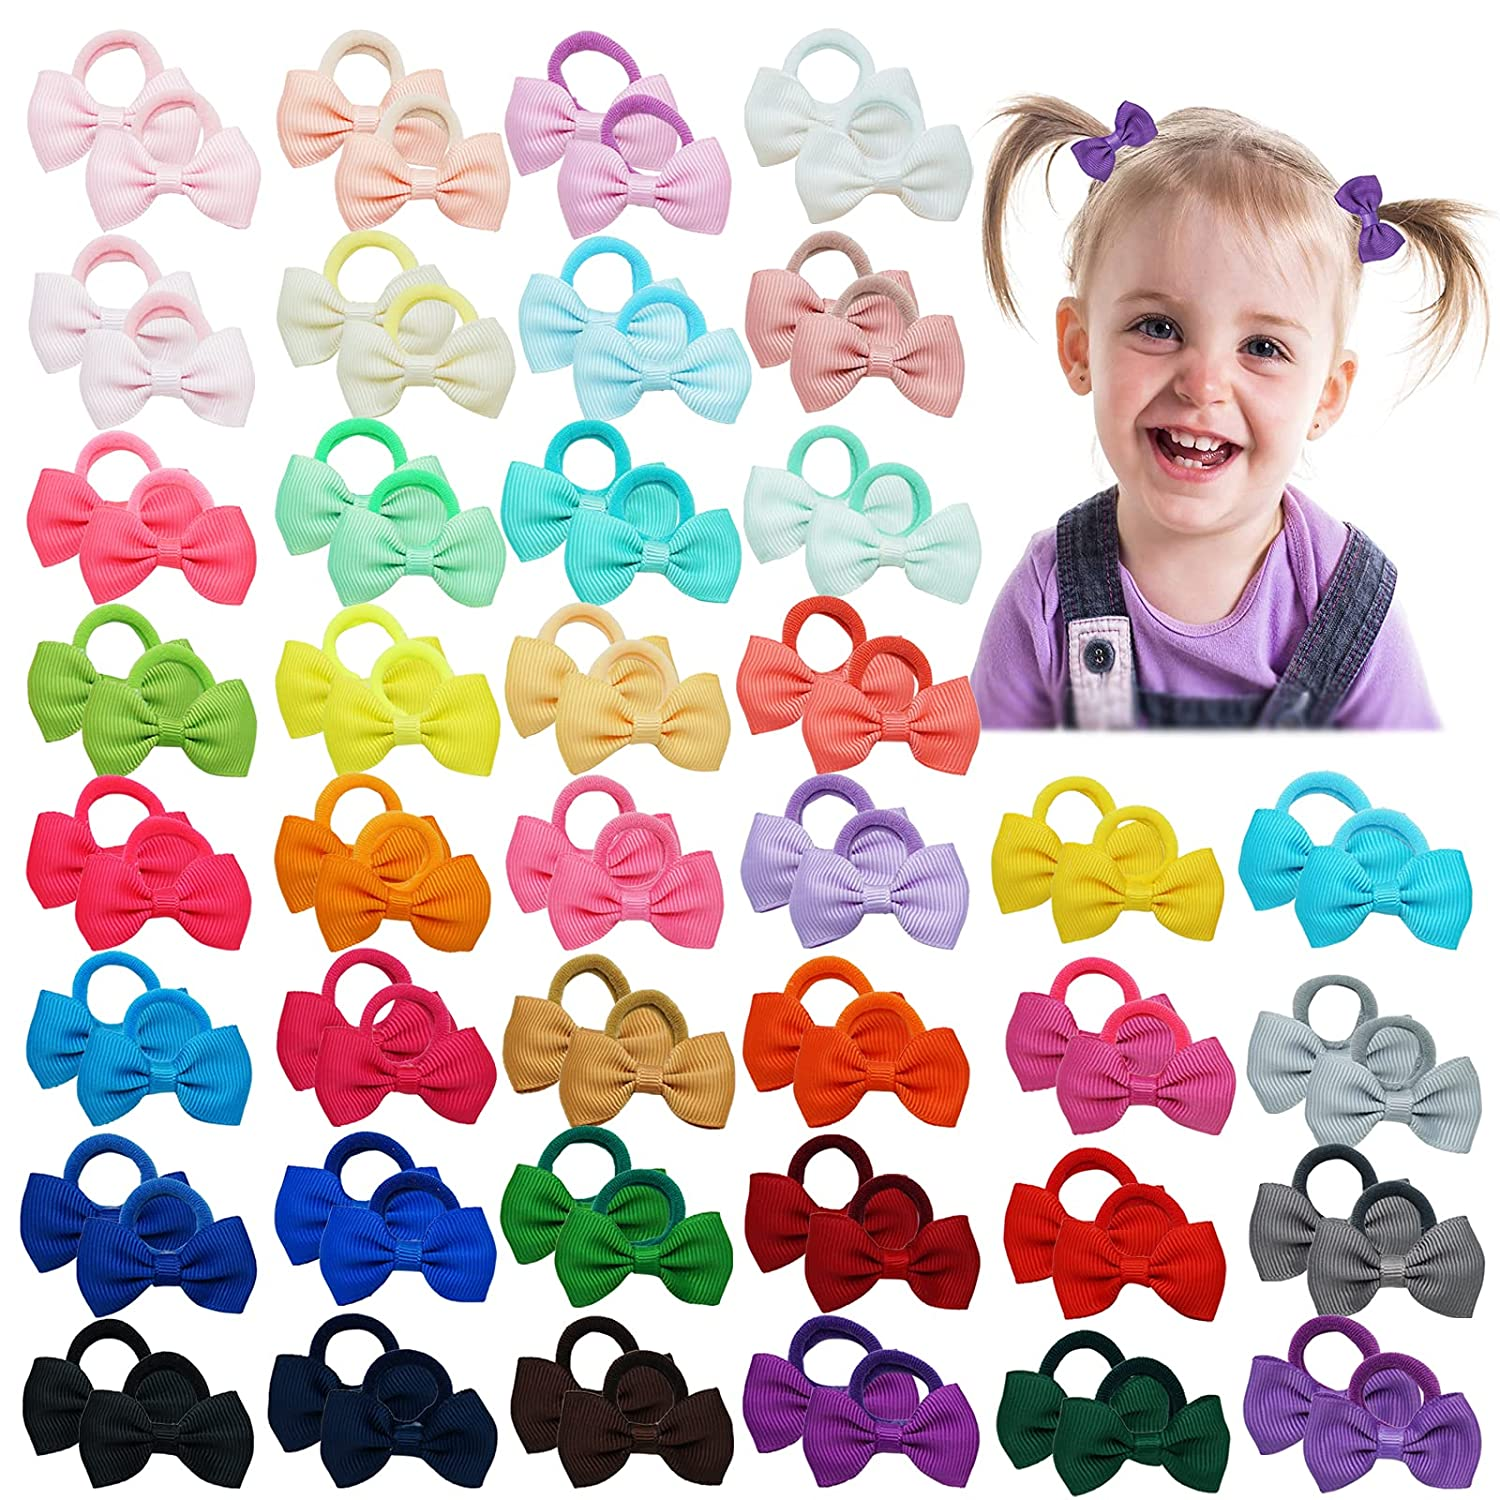 80PCS Baby Girls Hair Bows Ties 1.8Inch Grosgrain Ribbon Tiny Hair Bows Elastic Rubber Hair Bands Ponytail Holders Accessories for Newborns Infants Toddlers Kids 40Colors in Pairs